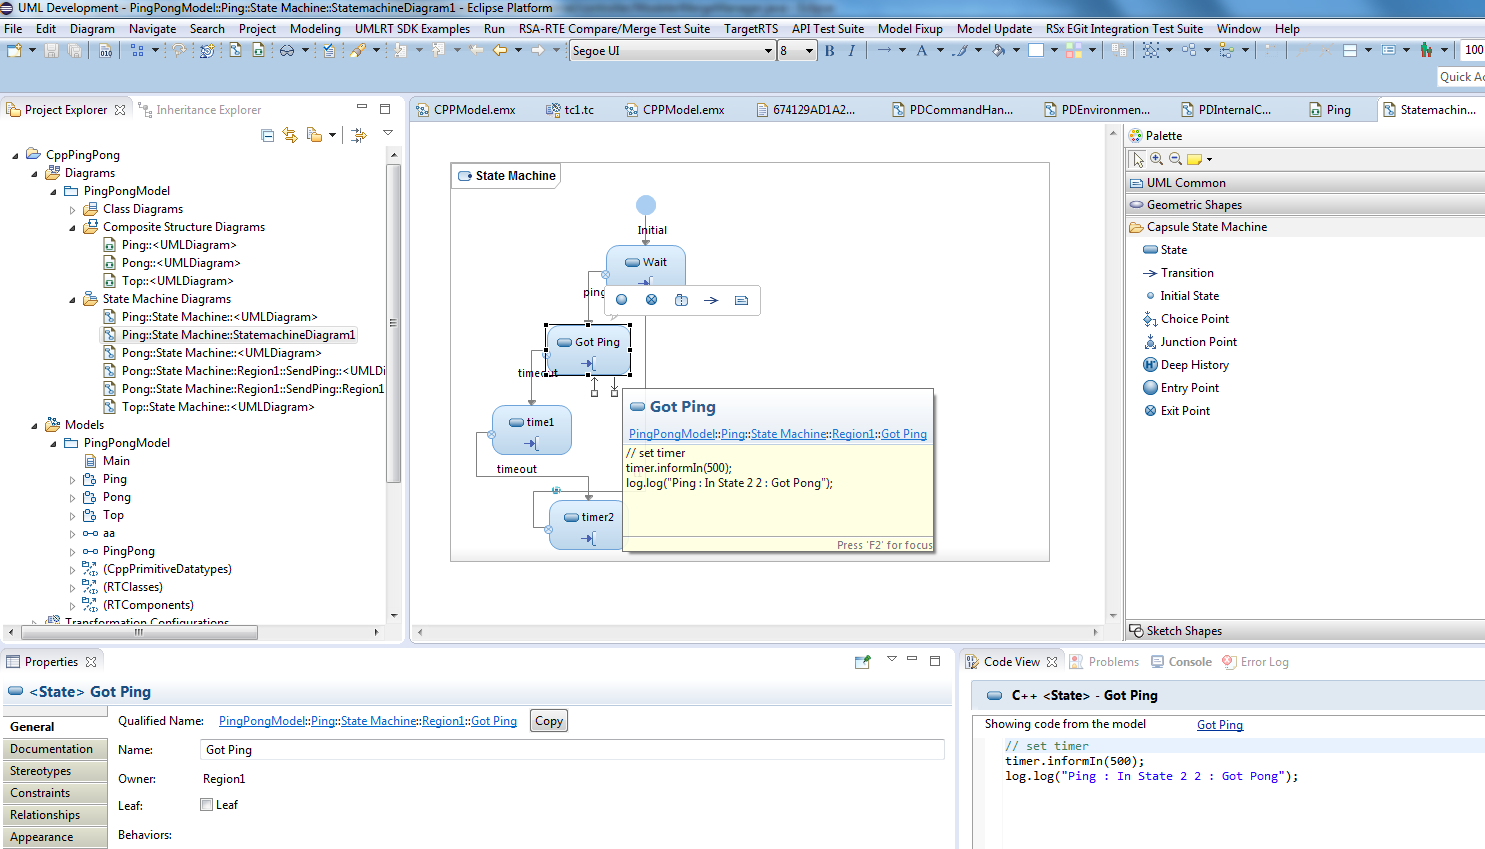 Rational Software Architect Real-time Edition